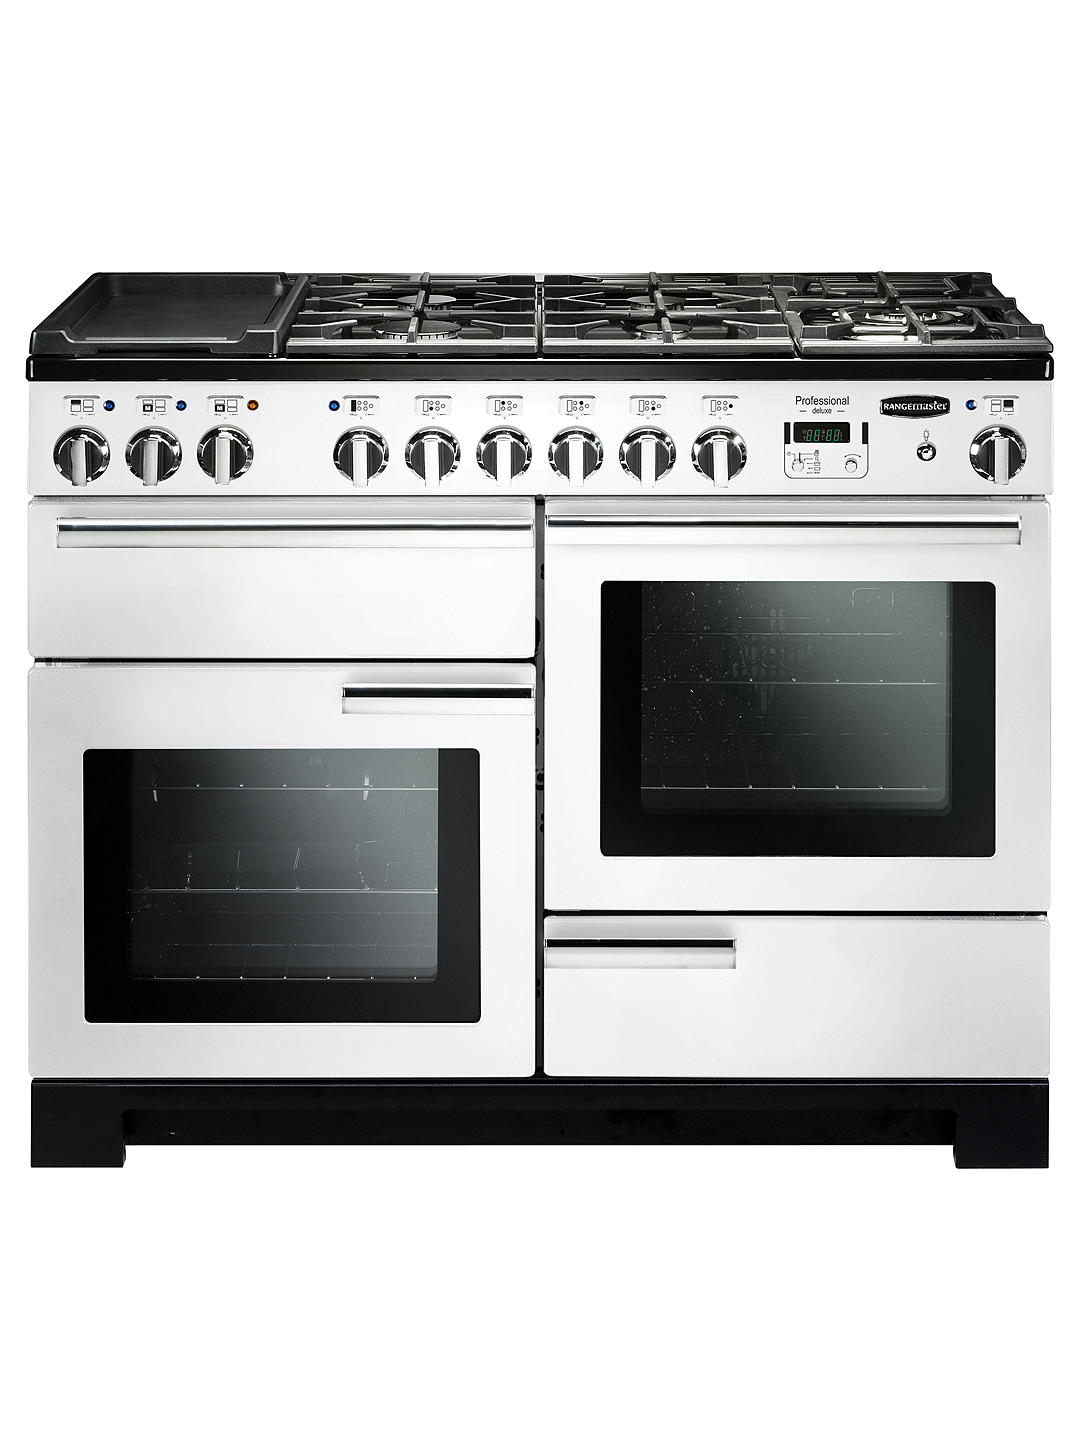 Buy Rangemaster Professional Deluxe 110 Dual Fuel Range Cooker, White/Chrome Trim Online at johnlewis.com